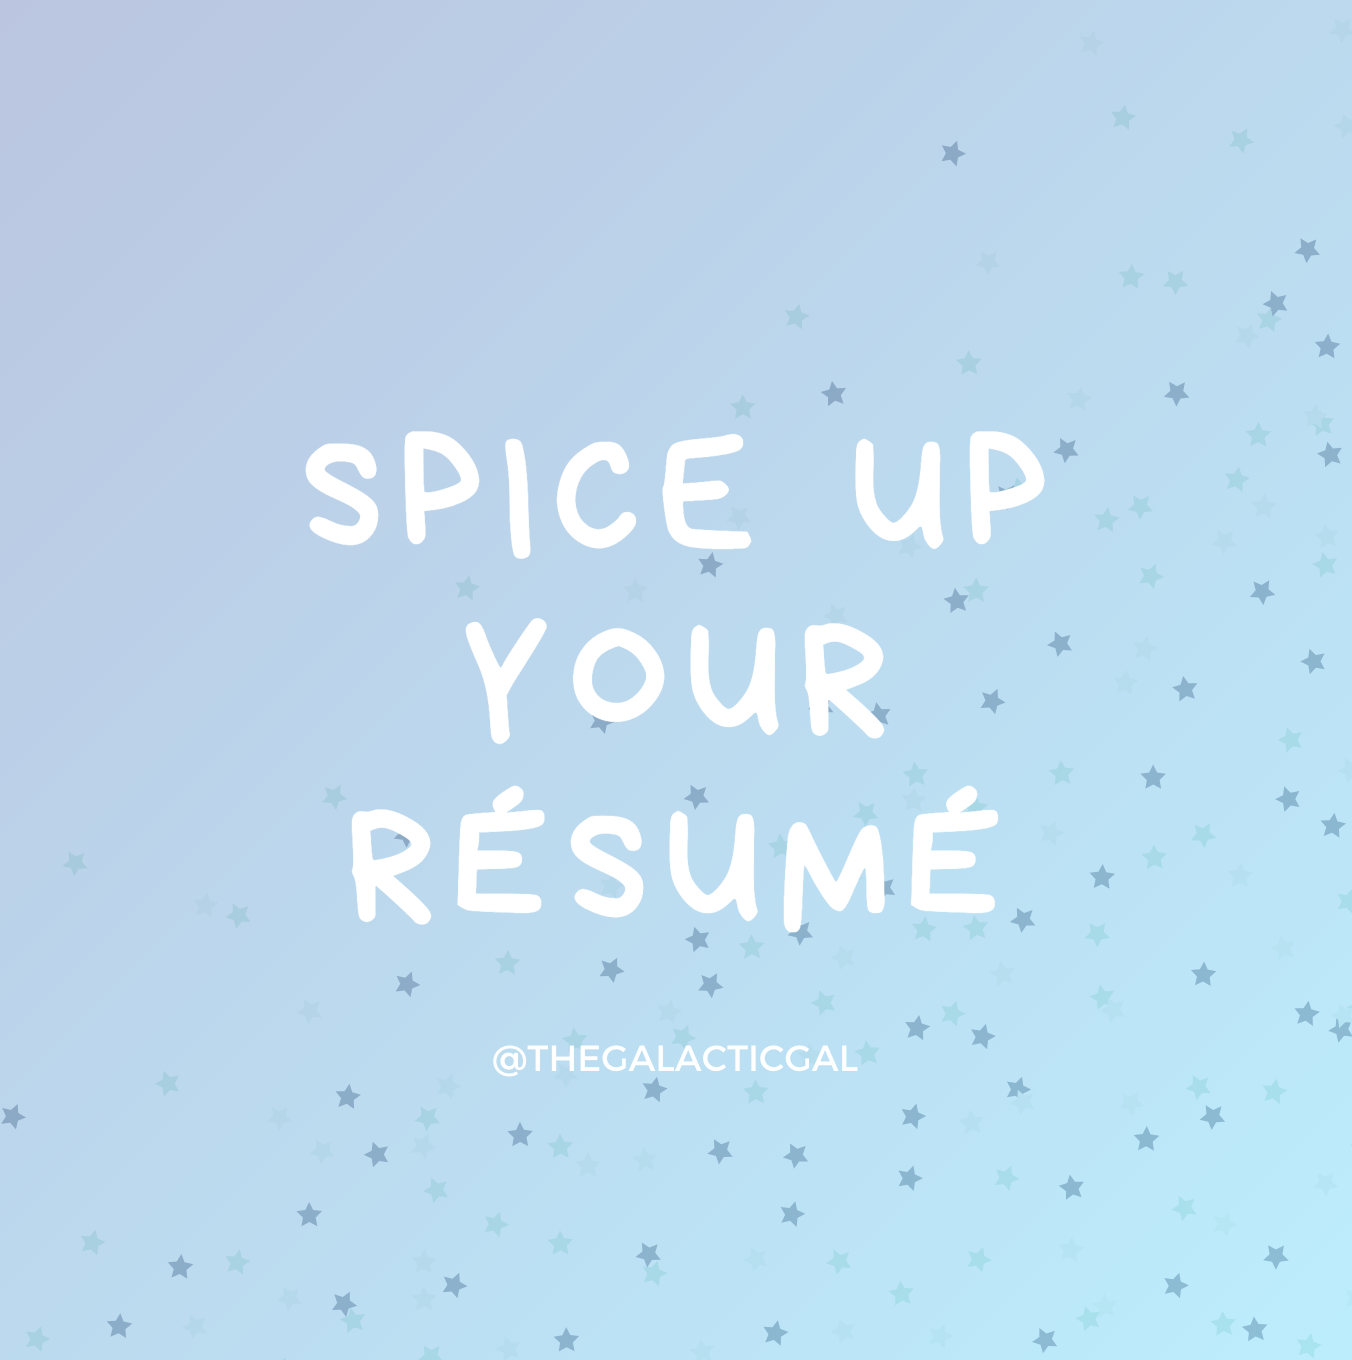 It's Time to Spice Up Your Résumé